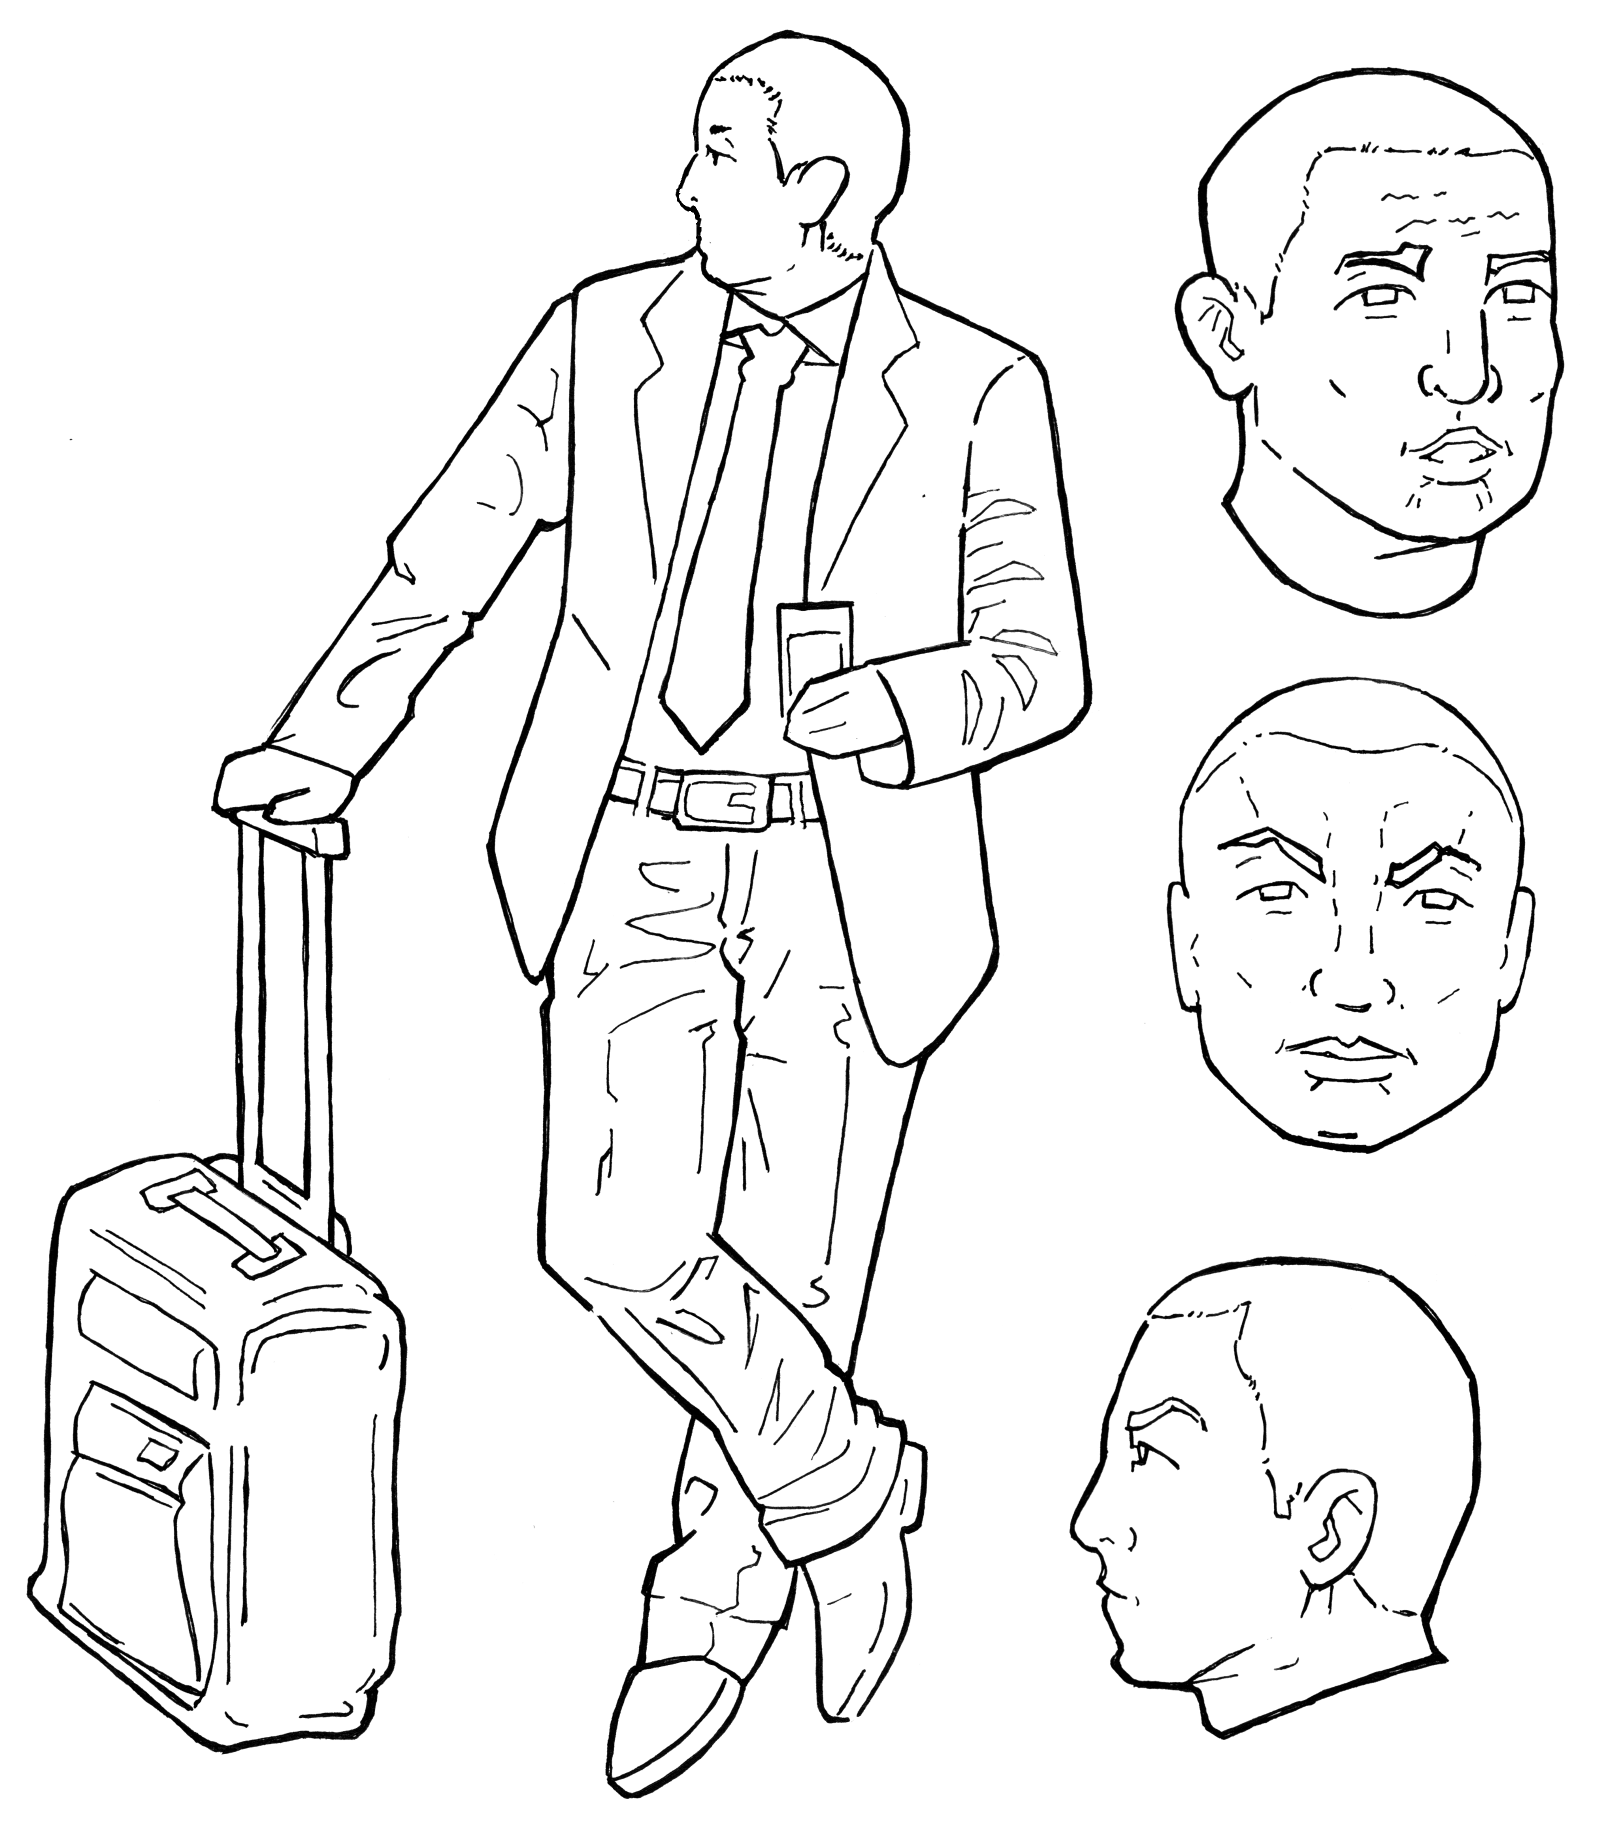 Character design for Jack